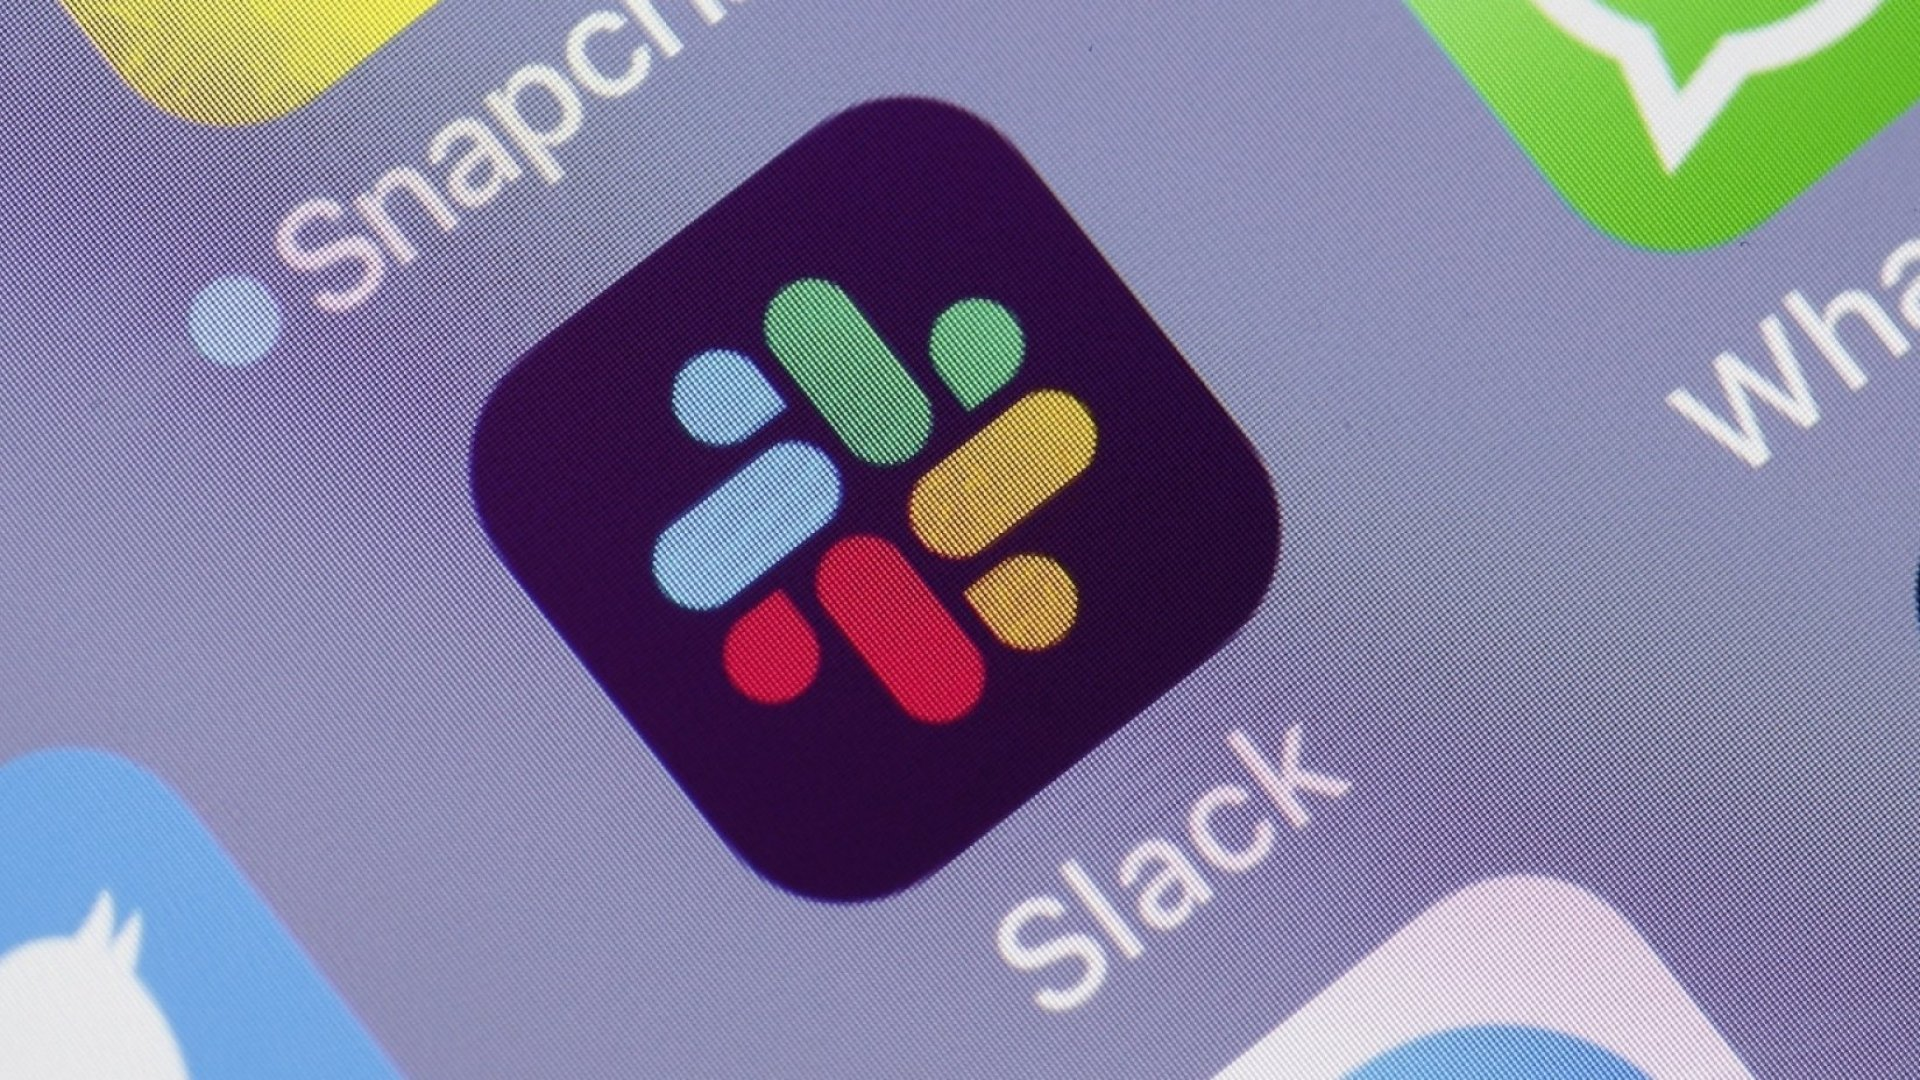 7 Things You Should Stop Doing on Slack Right Now to Be Less Annoying and More Productive